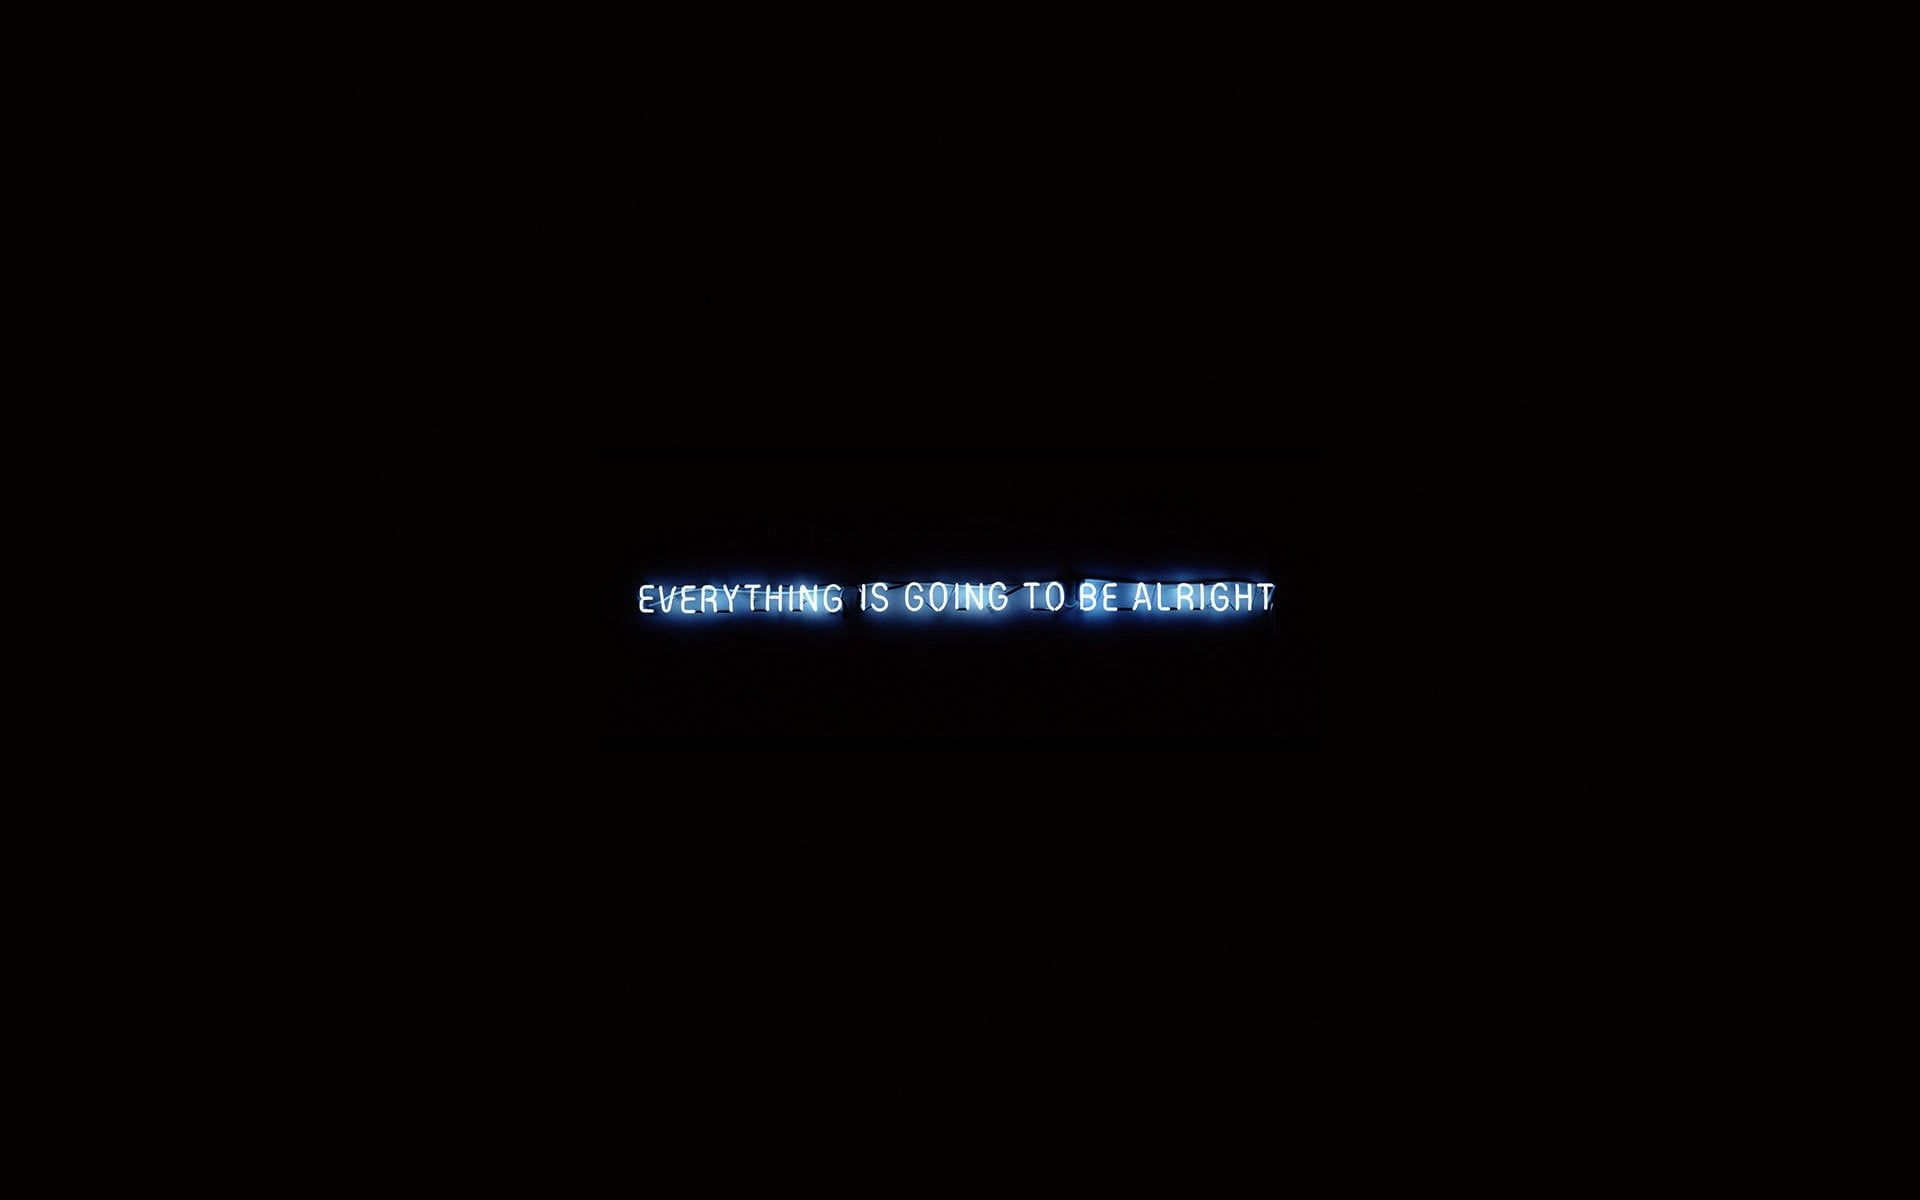 Everything Is Going To Be Alright Text On Black Background Quote Neon Minimalism Black Background 1080p Black Wallpaper Hd Backgrounds Backgrounds Desktop